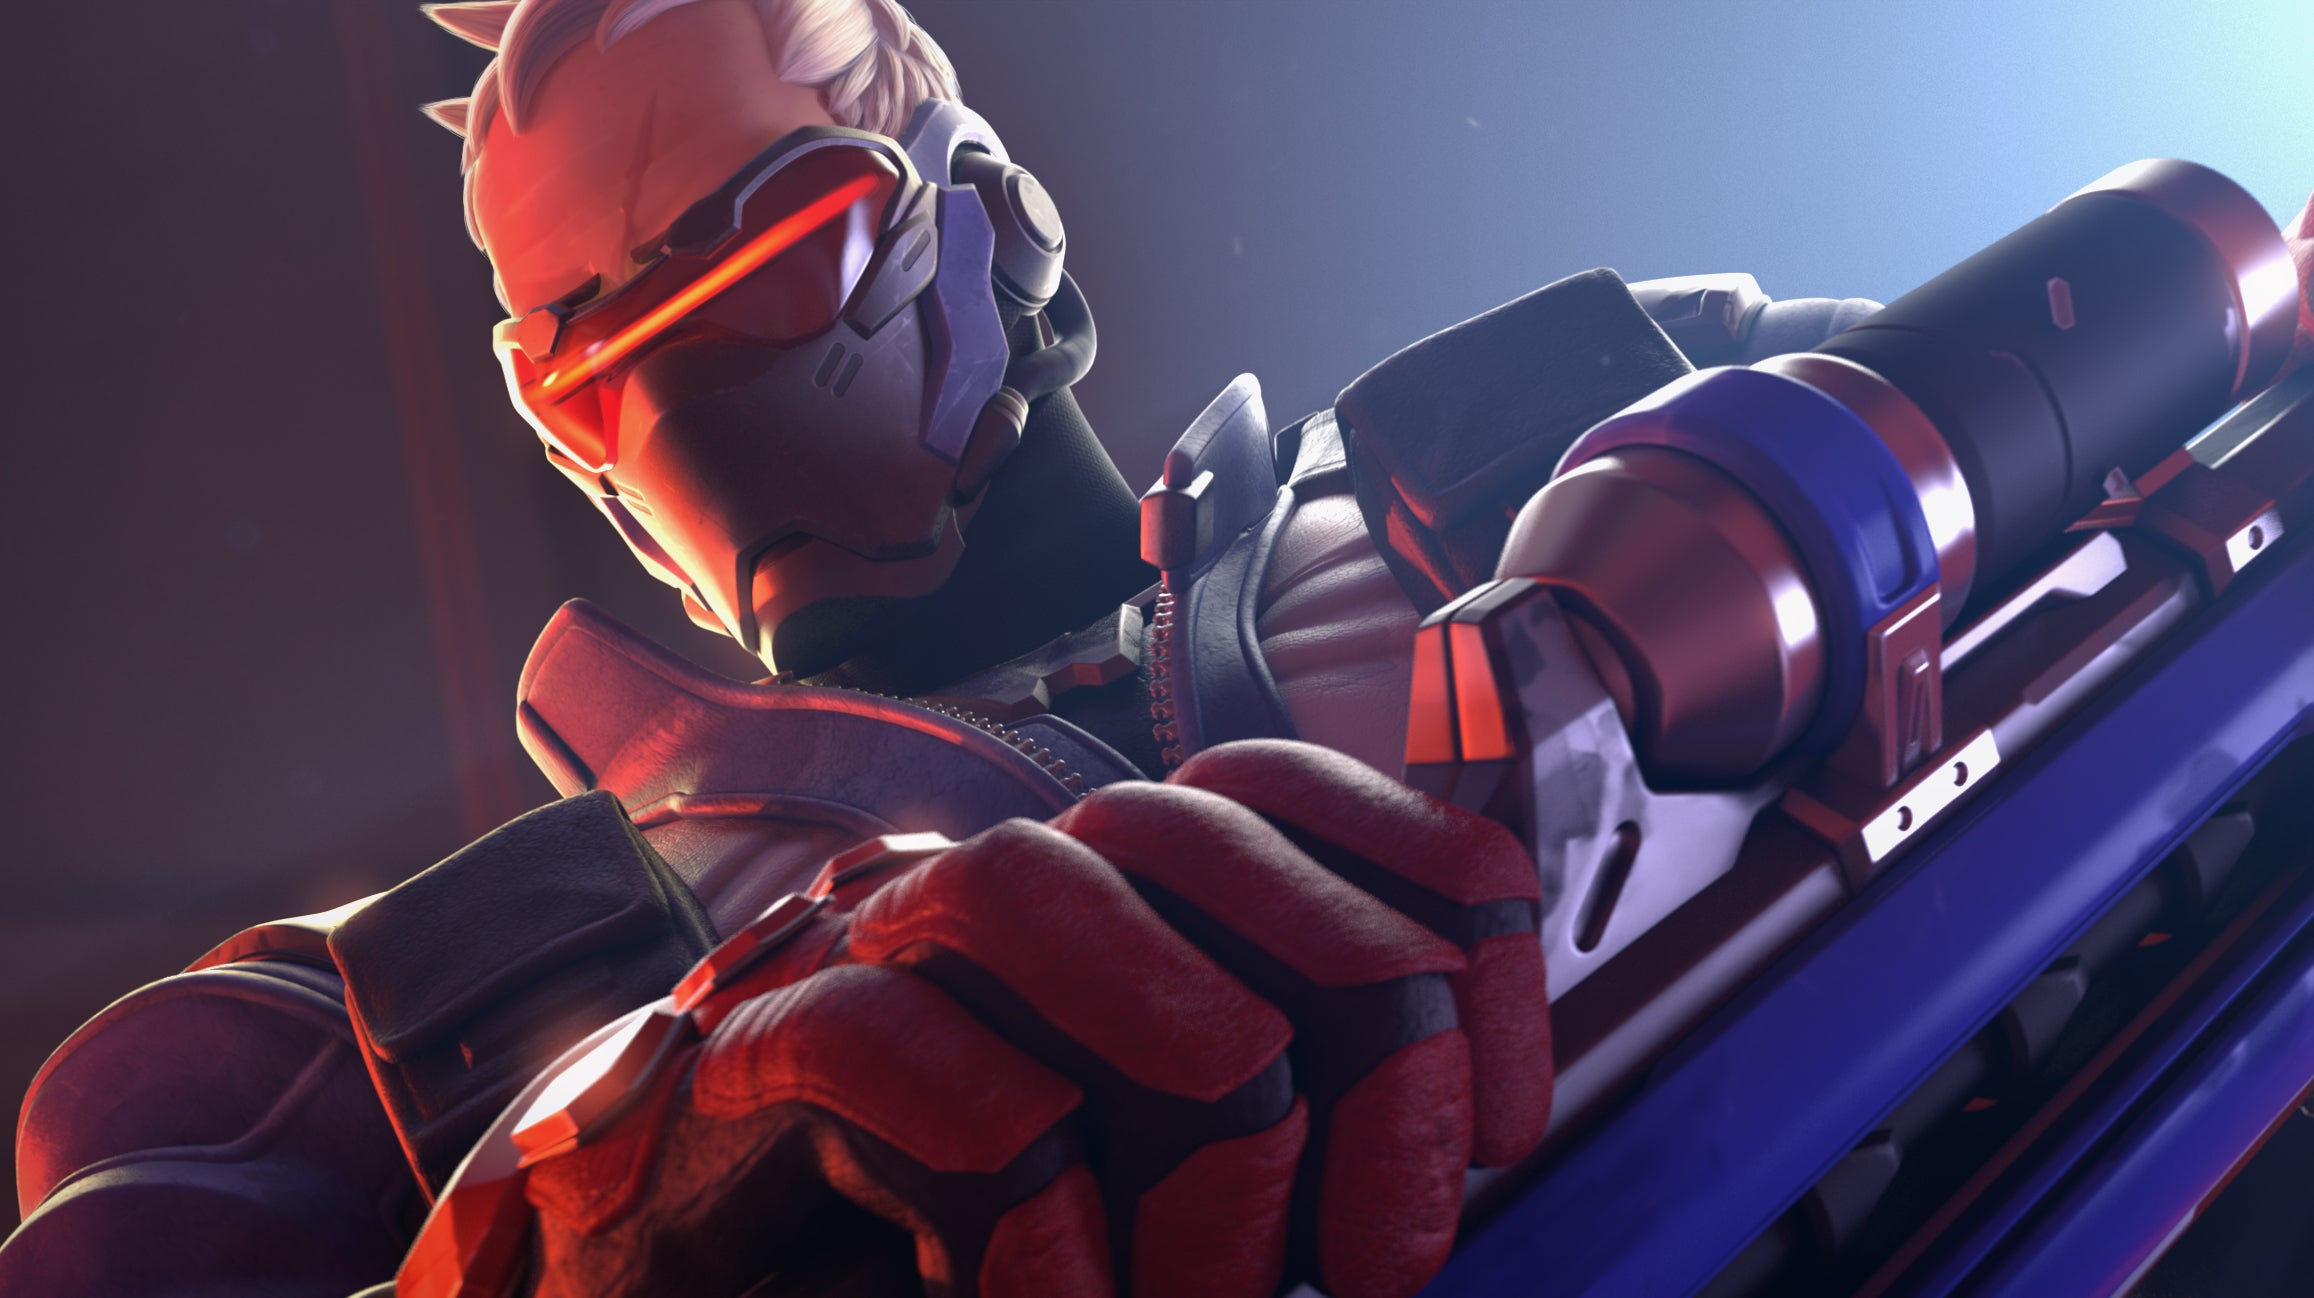 Overwatch's Latest Developer Update Addresses Community and Avoiding Player Toxicity